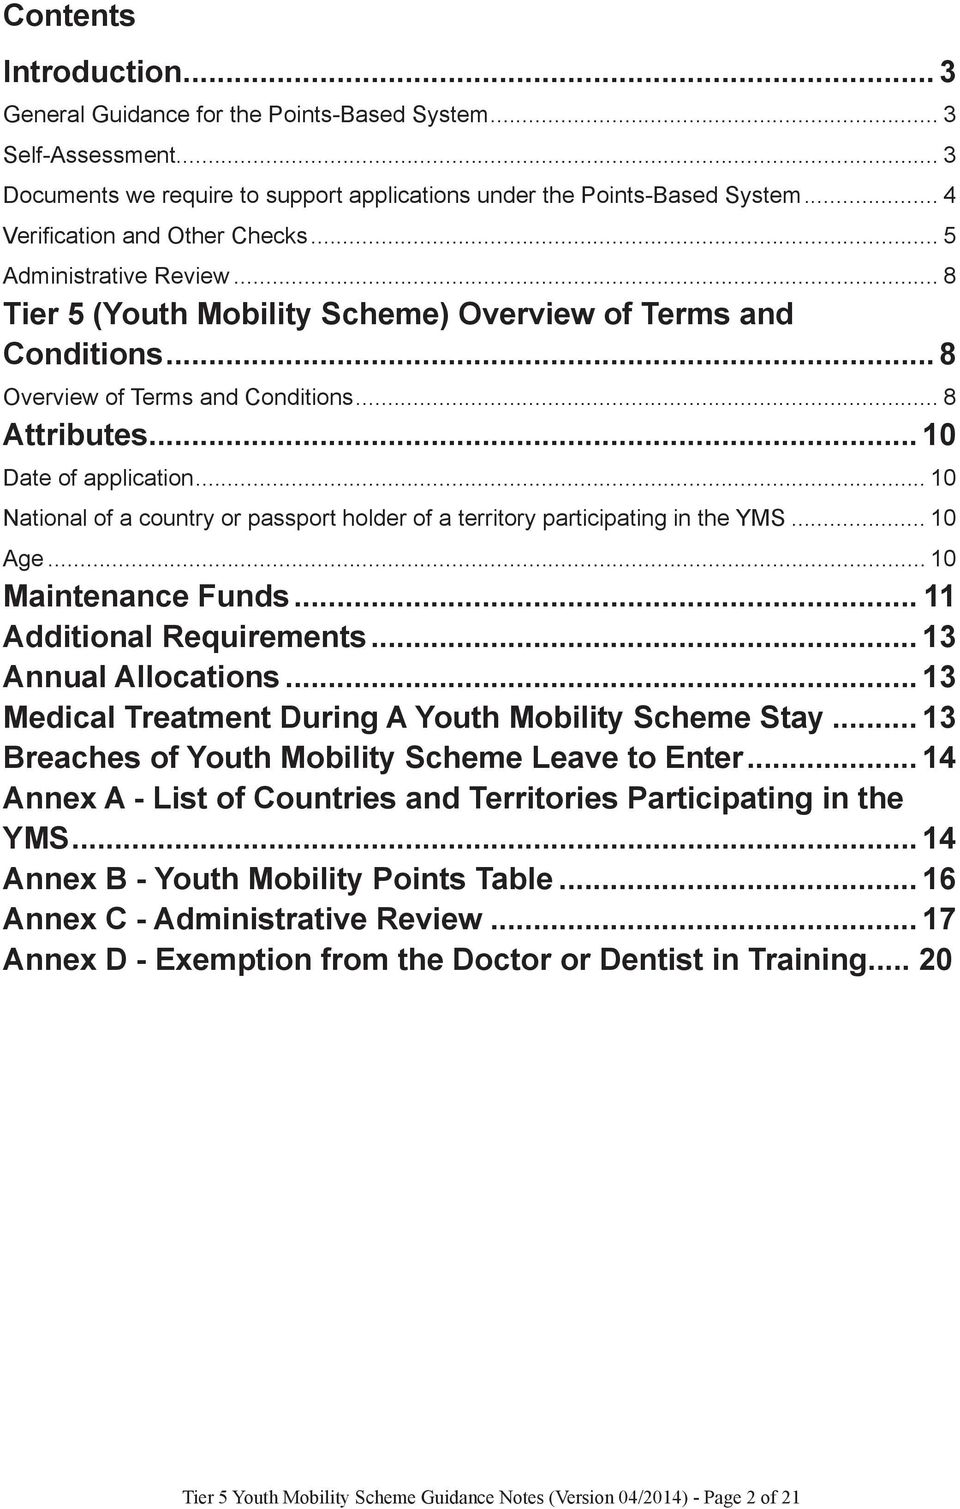 holder of a territory participating in the YMS 10 Age 10 Maintenance Funds 11 Additional Requirements 13 Annual Allocations 13 Medical Treatment During A Youth Mobility Scheme Stay 13 Breaches of